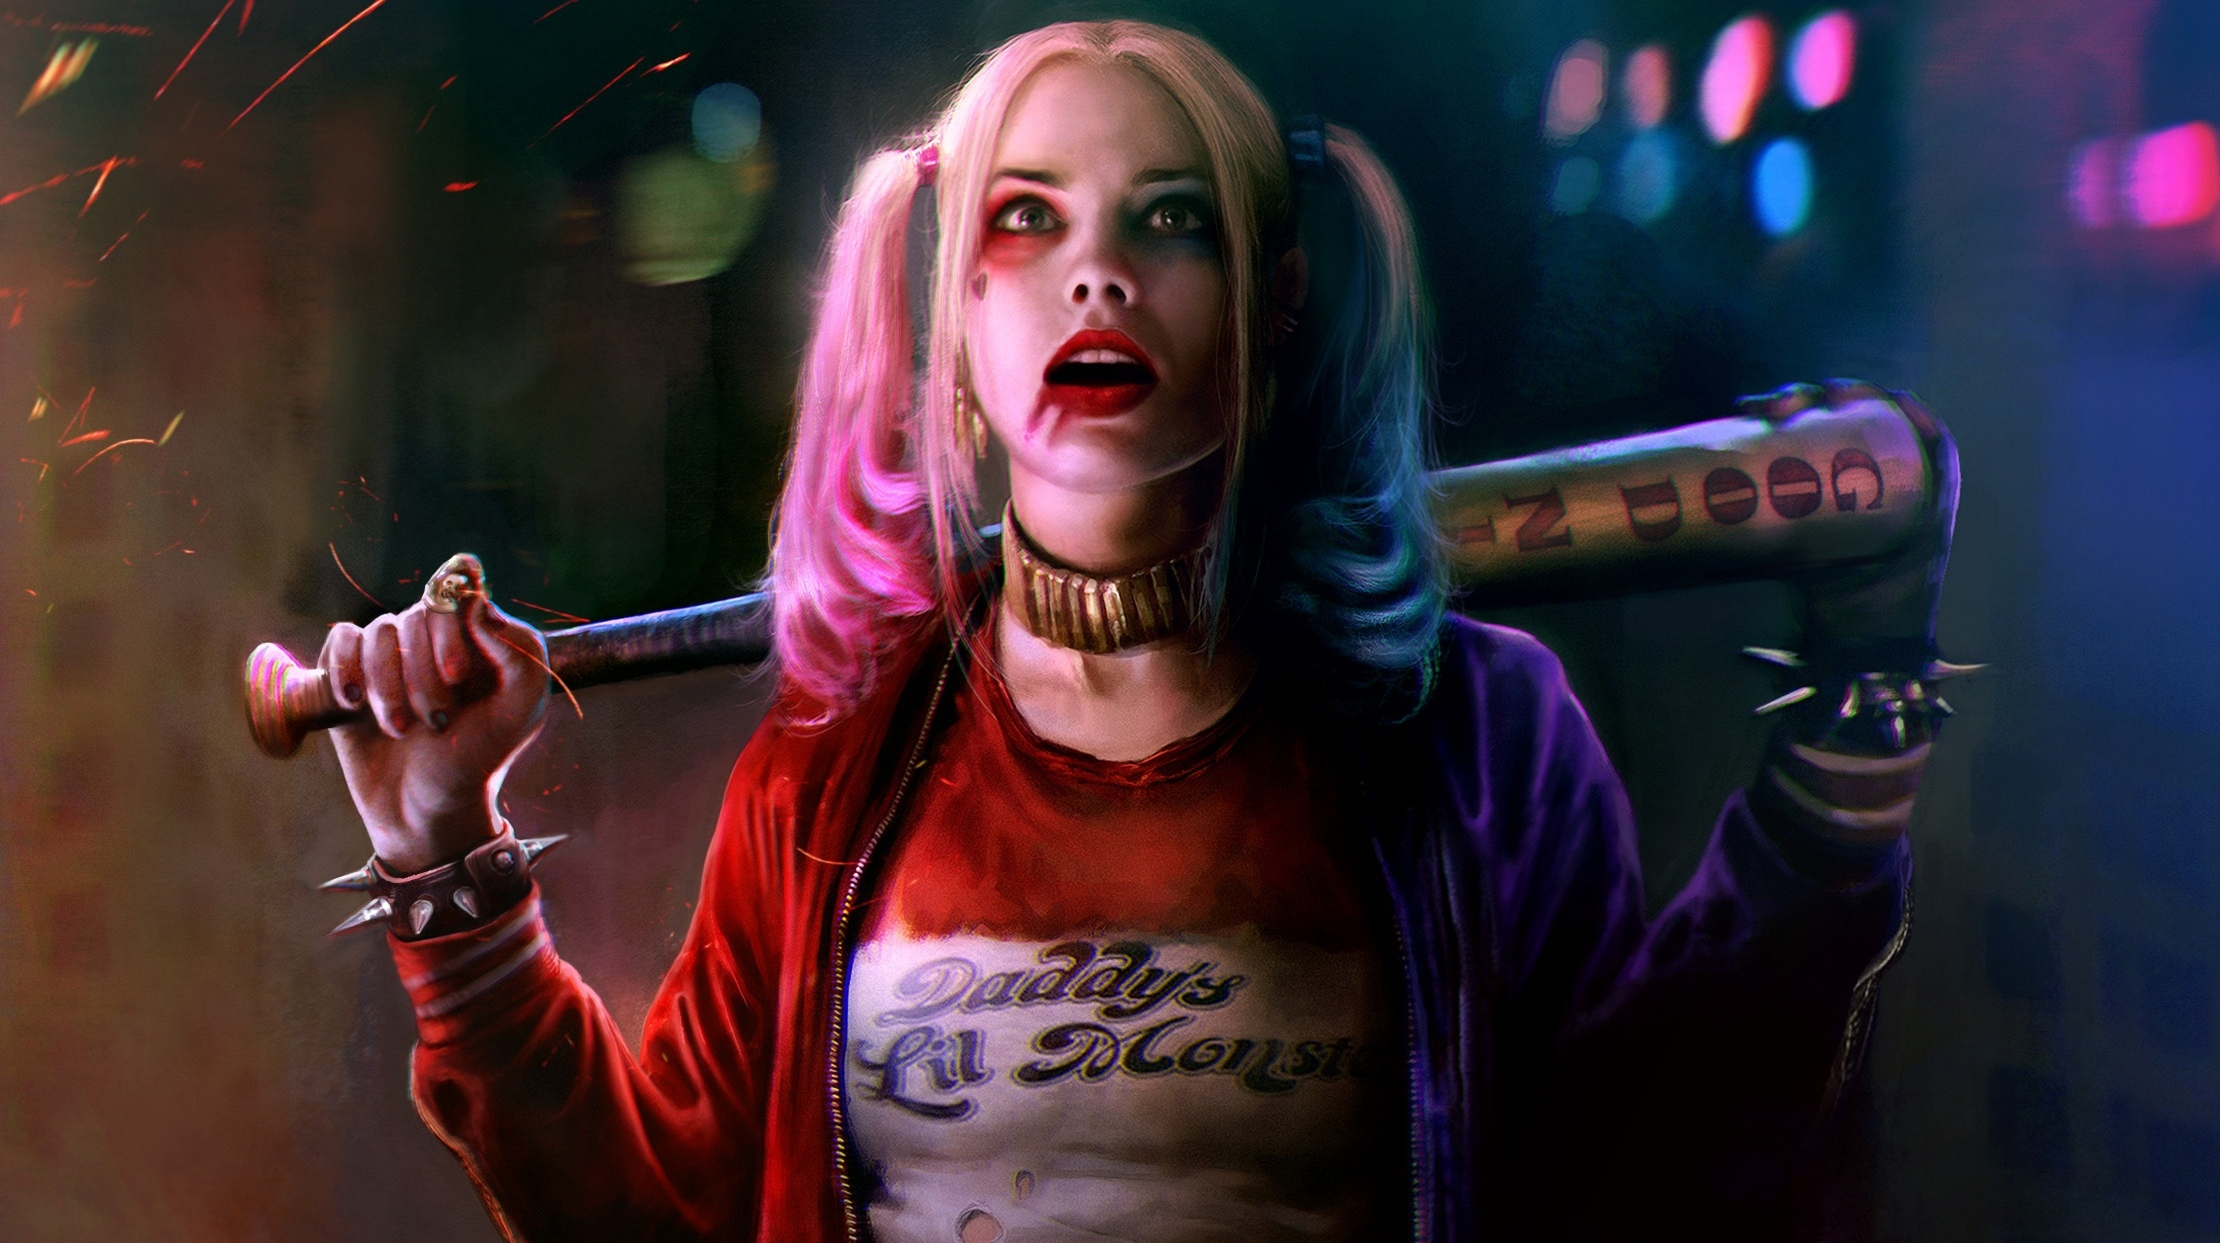 335 Harley Quinn HD Wallpapers | Backgrounds - Wallpaper Abyss